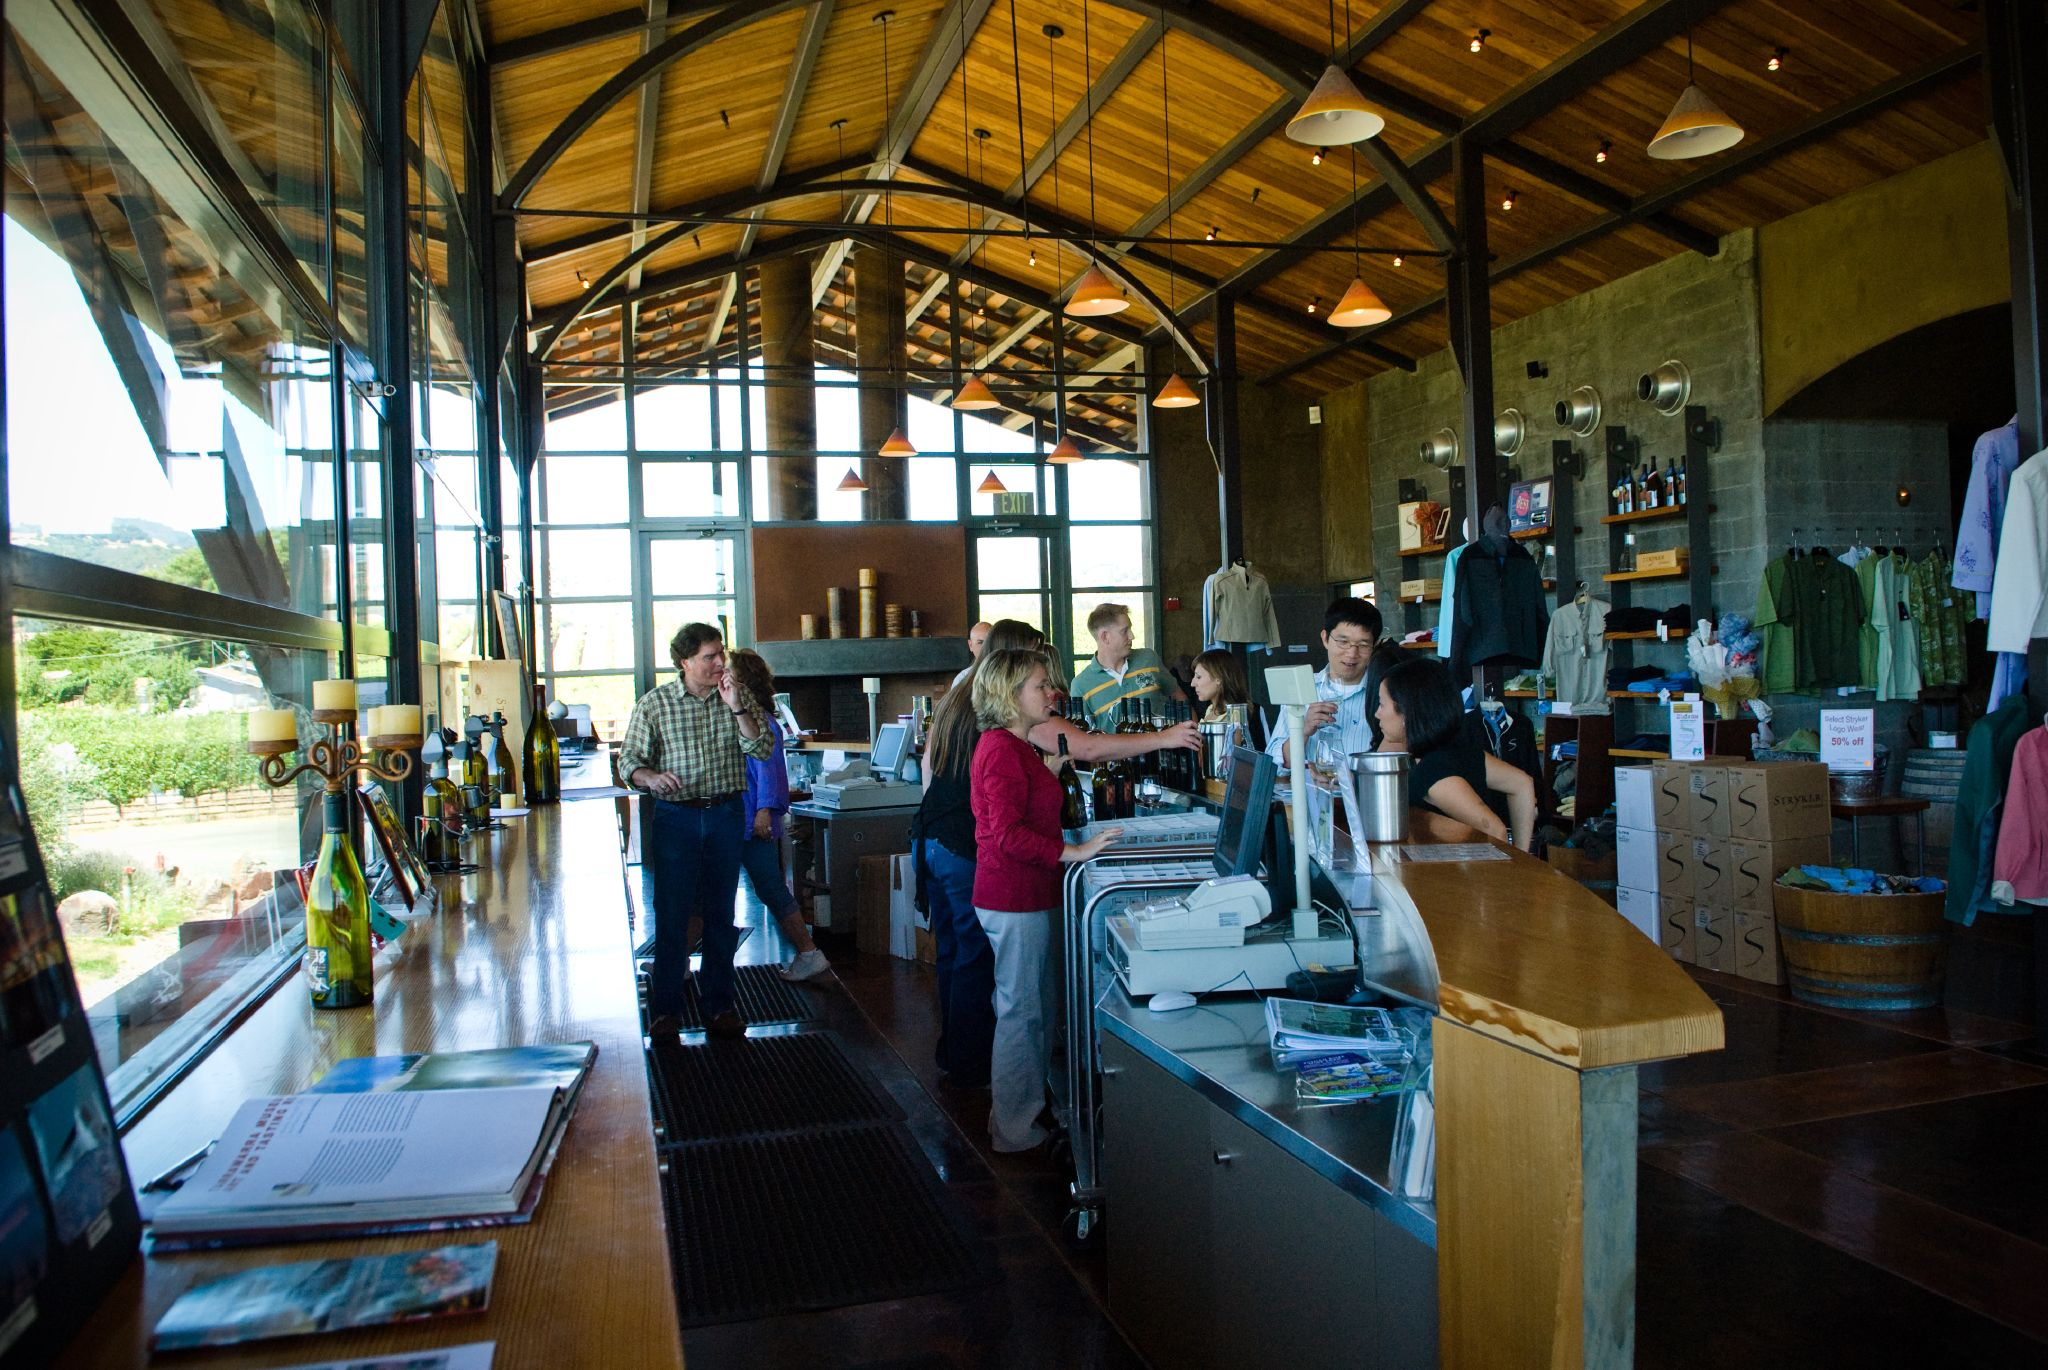 File:Stryker tasting room.jpg - Wikimedia Commons